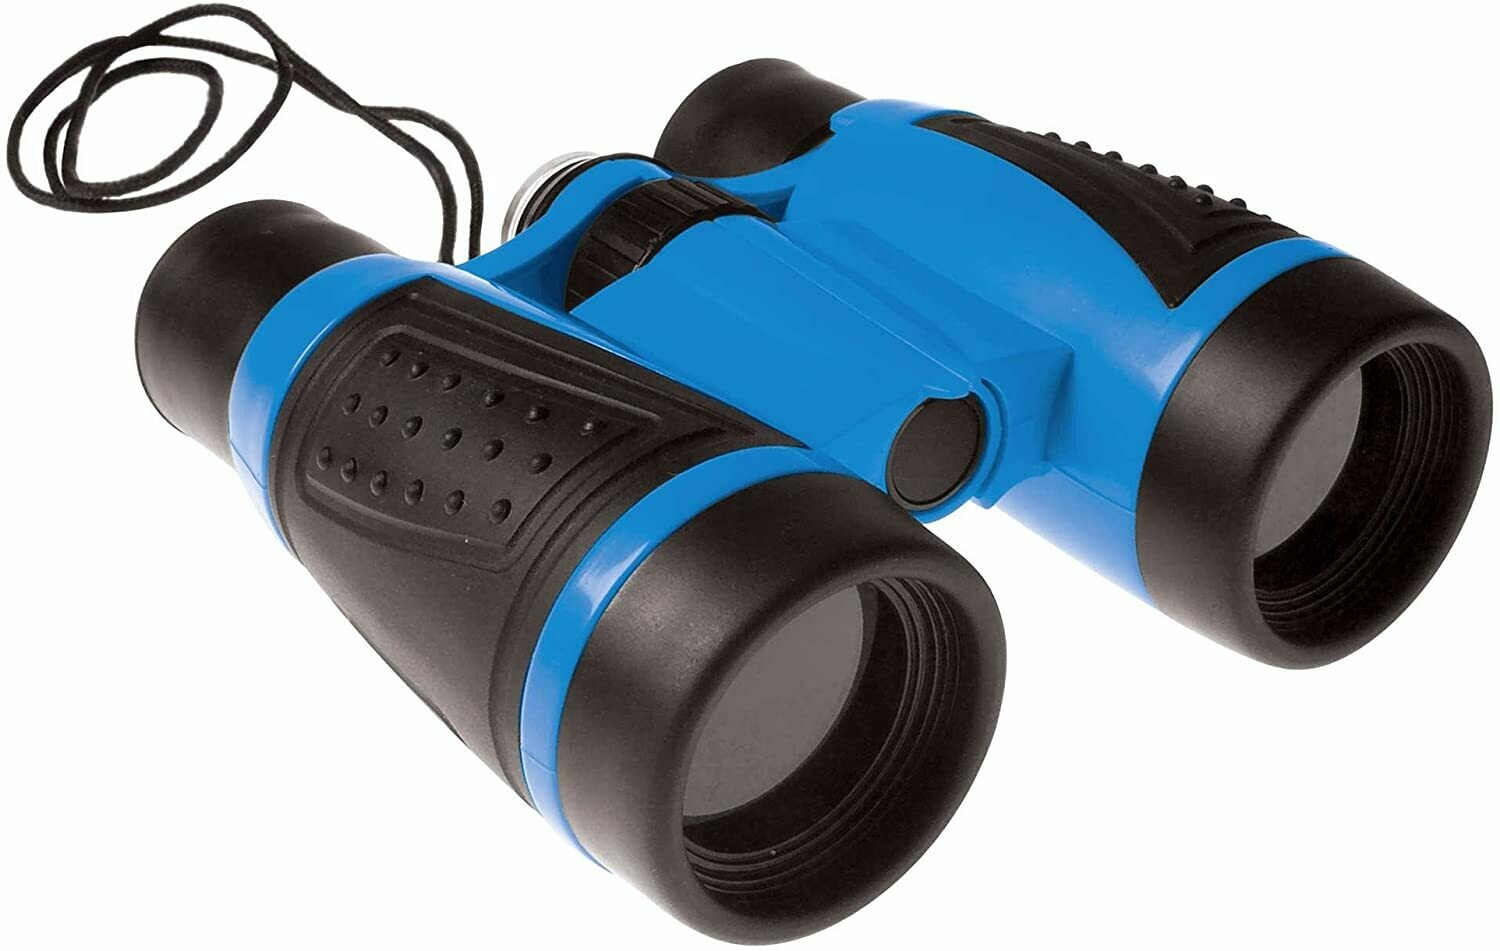 Educational Binoculars Geosafari w/Compass